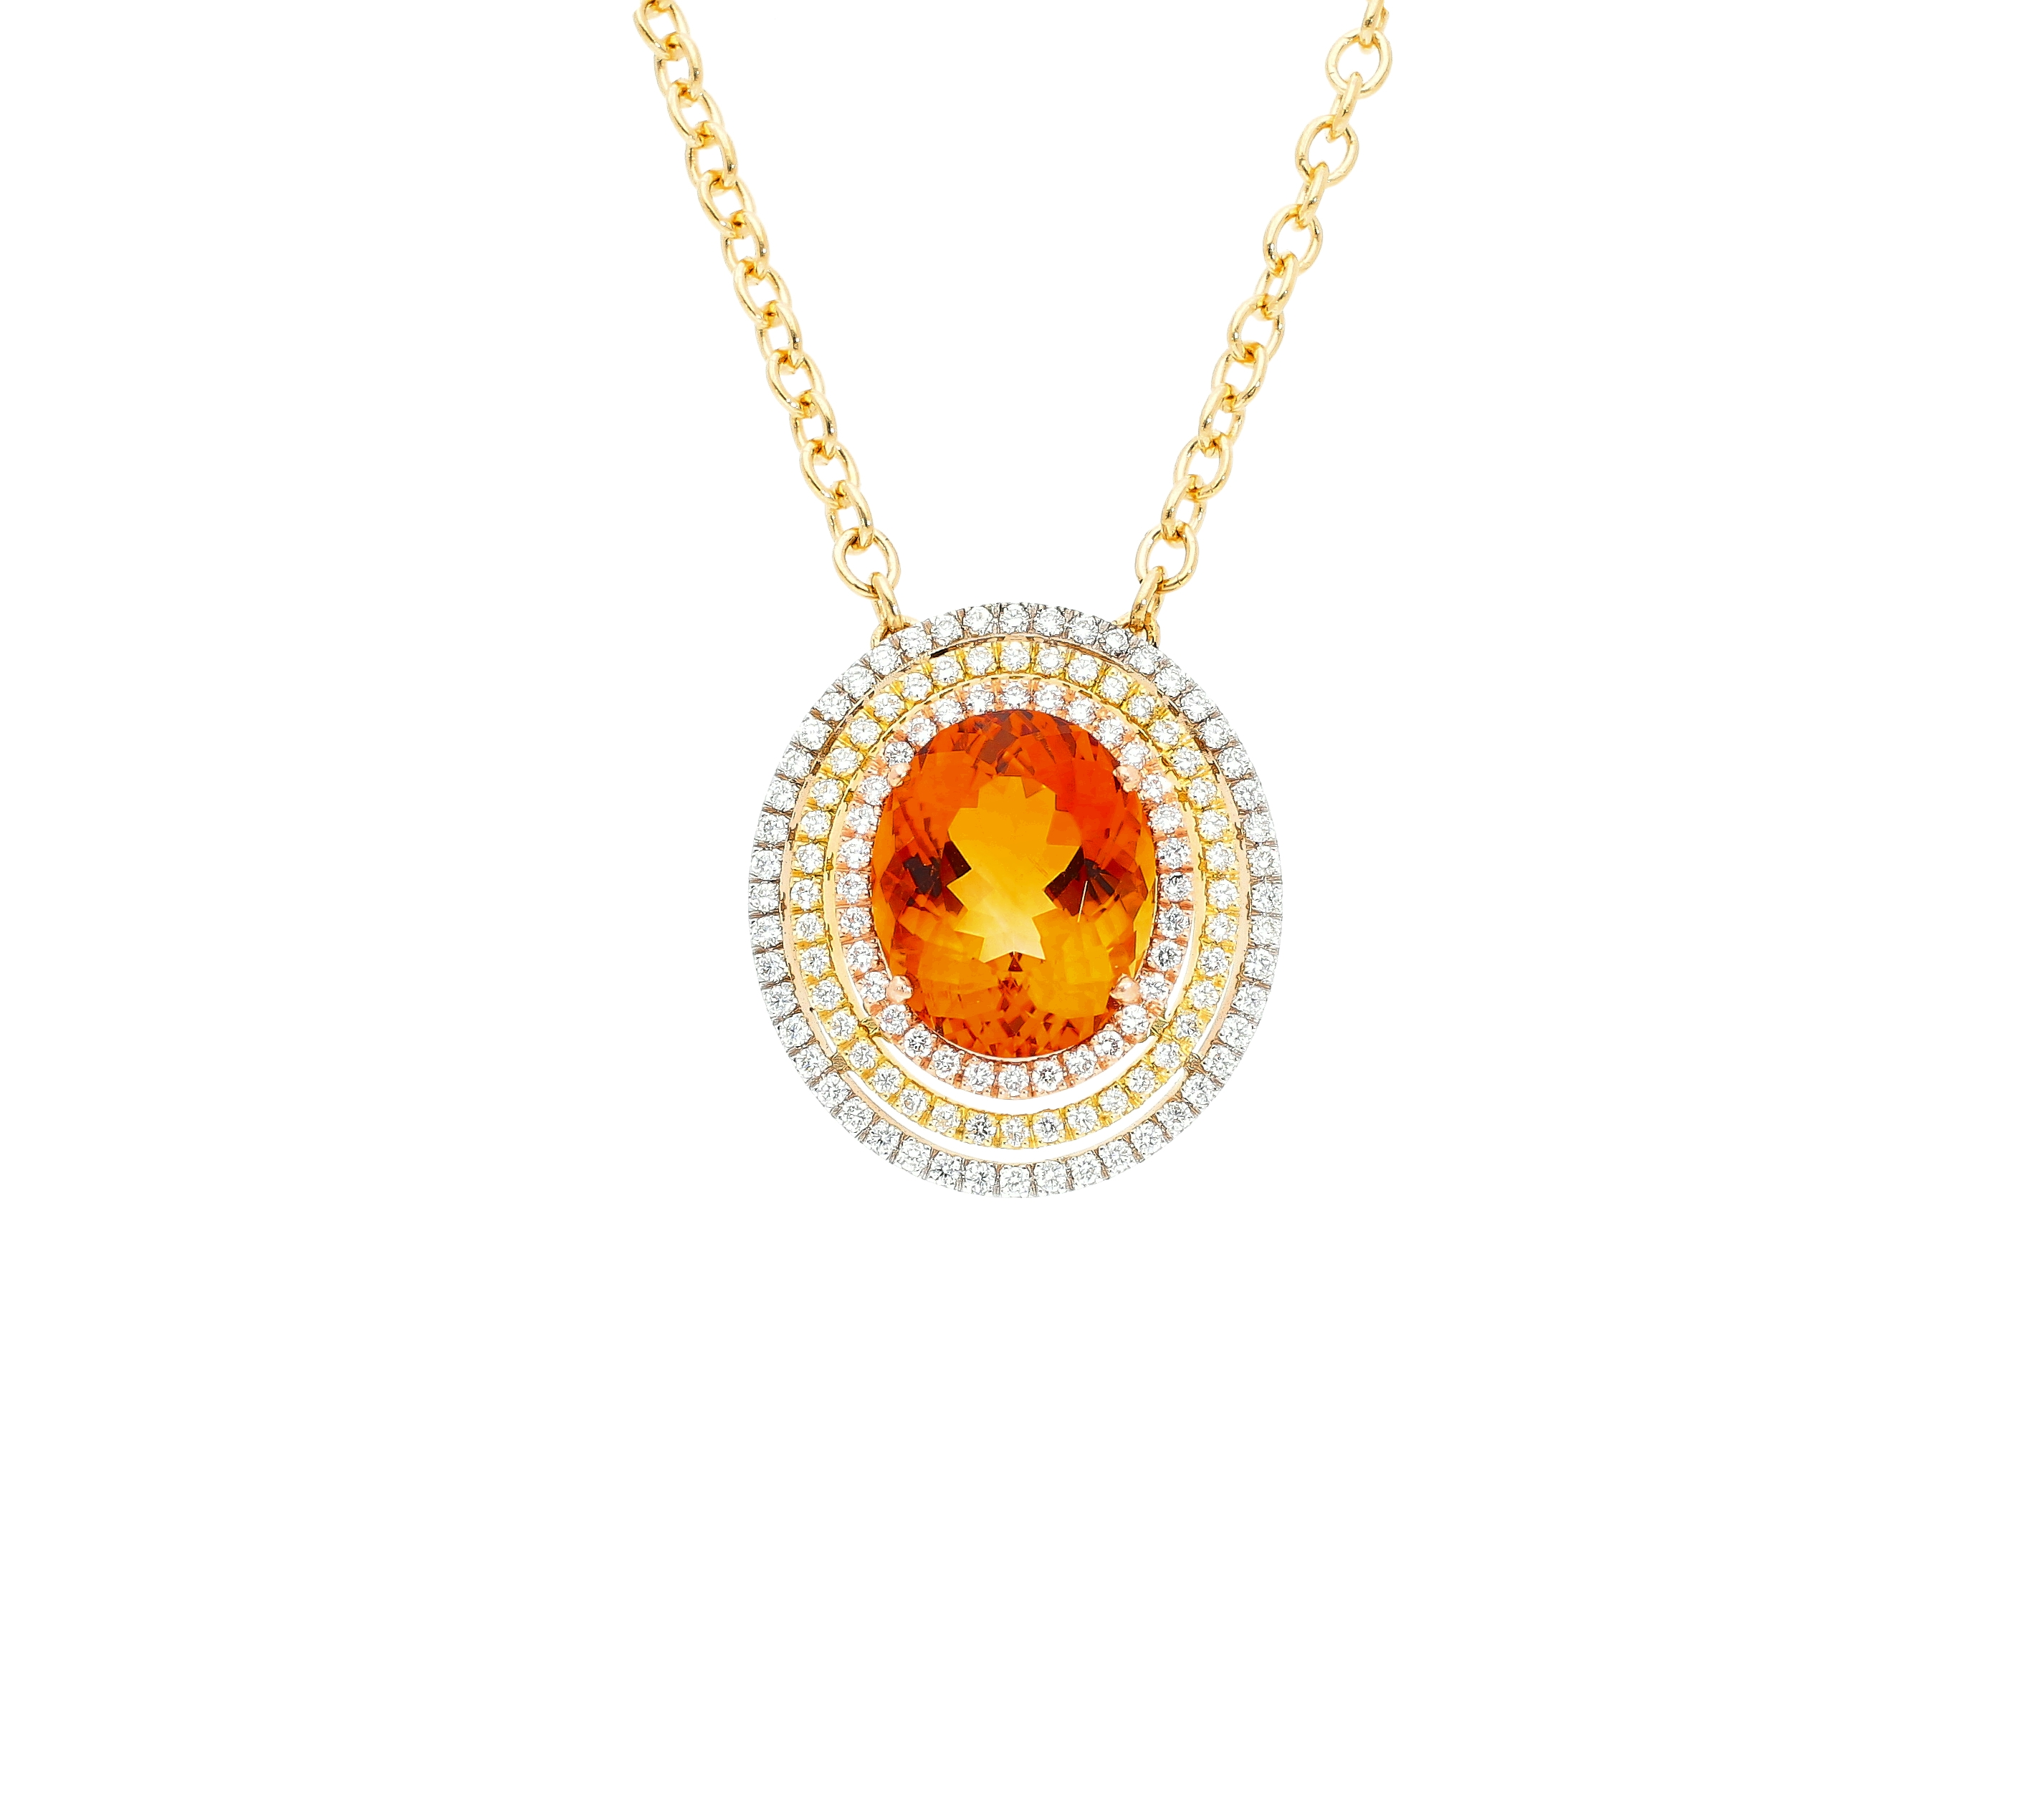 Saturno Collection necklace Orange Citrine and diamonds in three colors 18kt gold